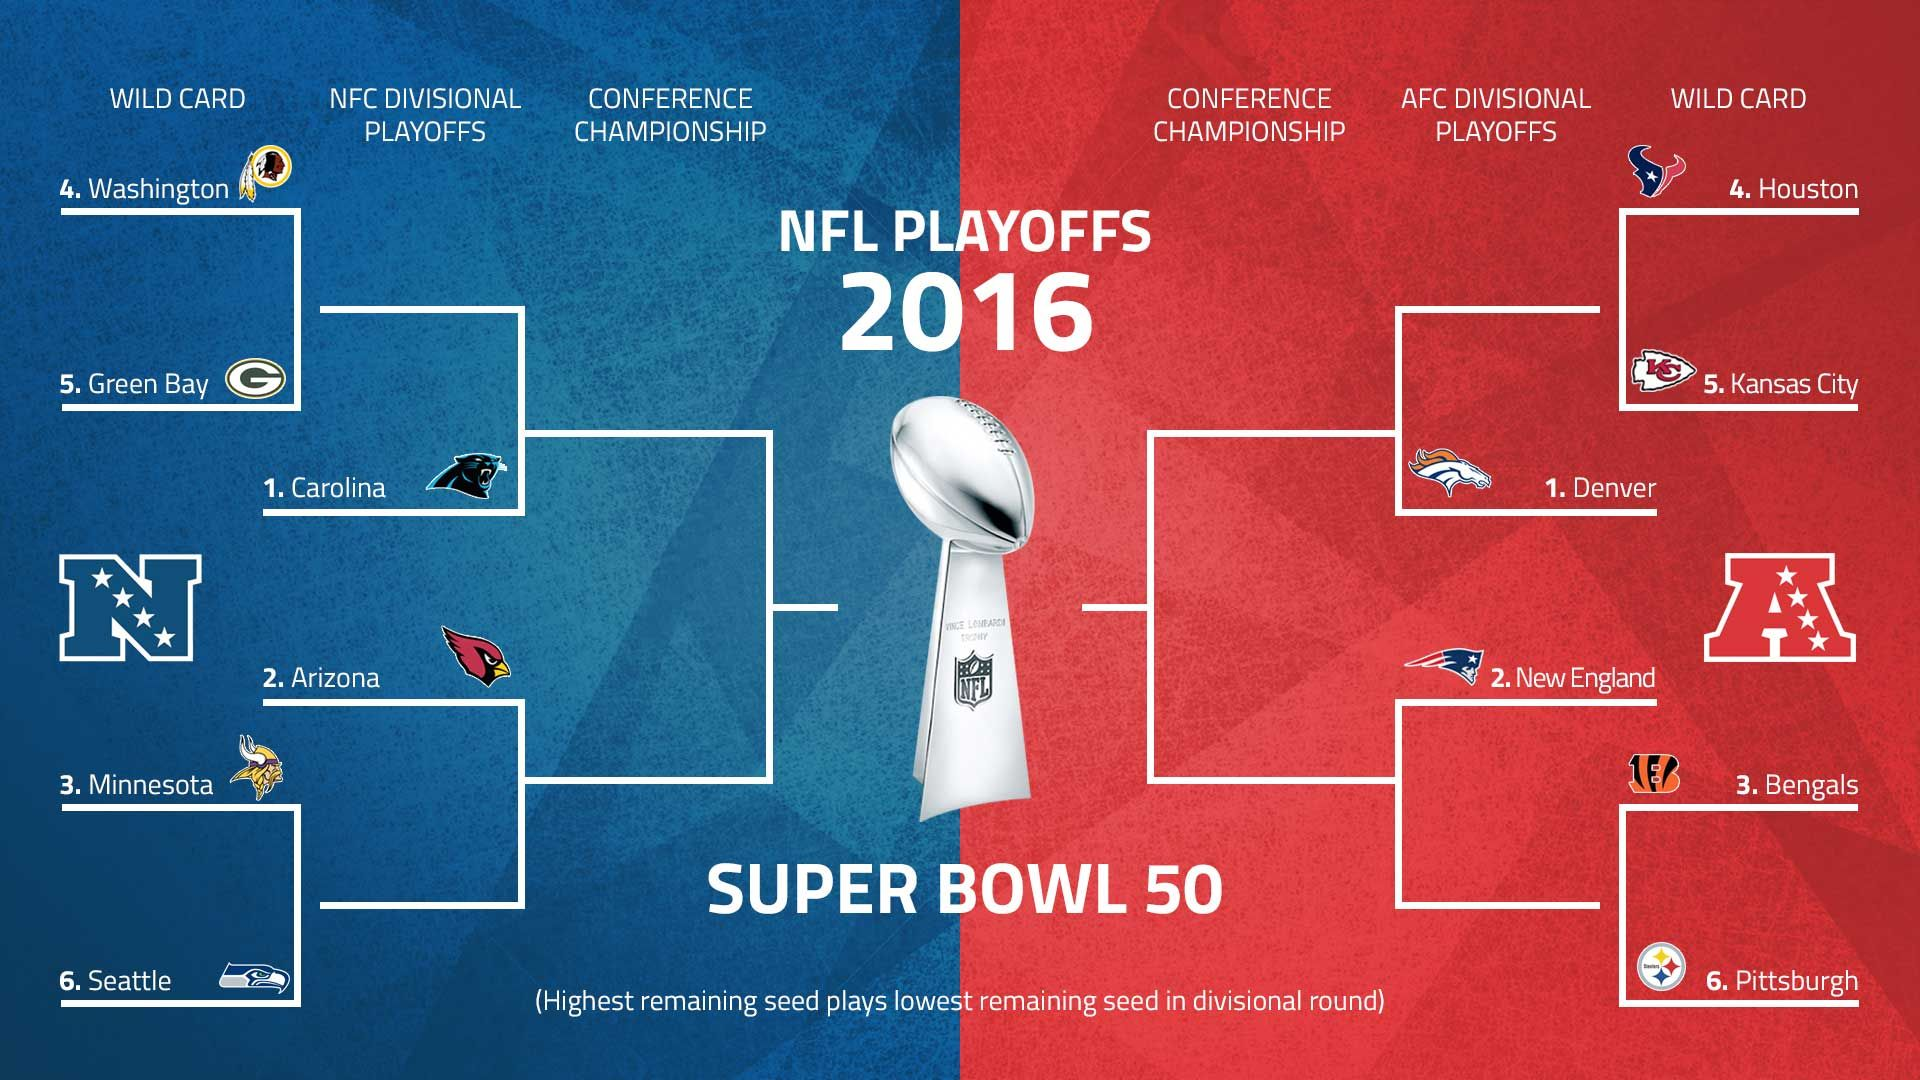 Nfl Playoffs 2016 Schedule Patriots Travel To Denver Panthers Host Cardinals In Afc Nfc Championship Games Nfl Playoffs Playoffs Nfc Championship Game